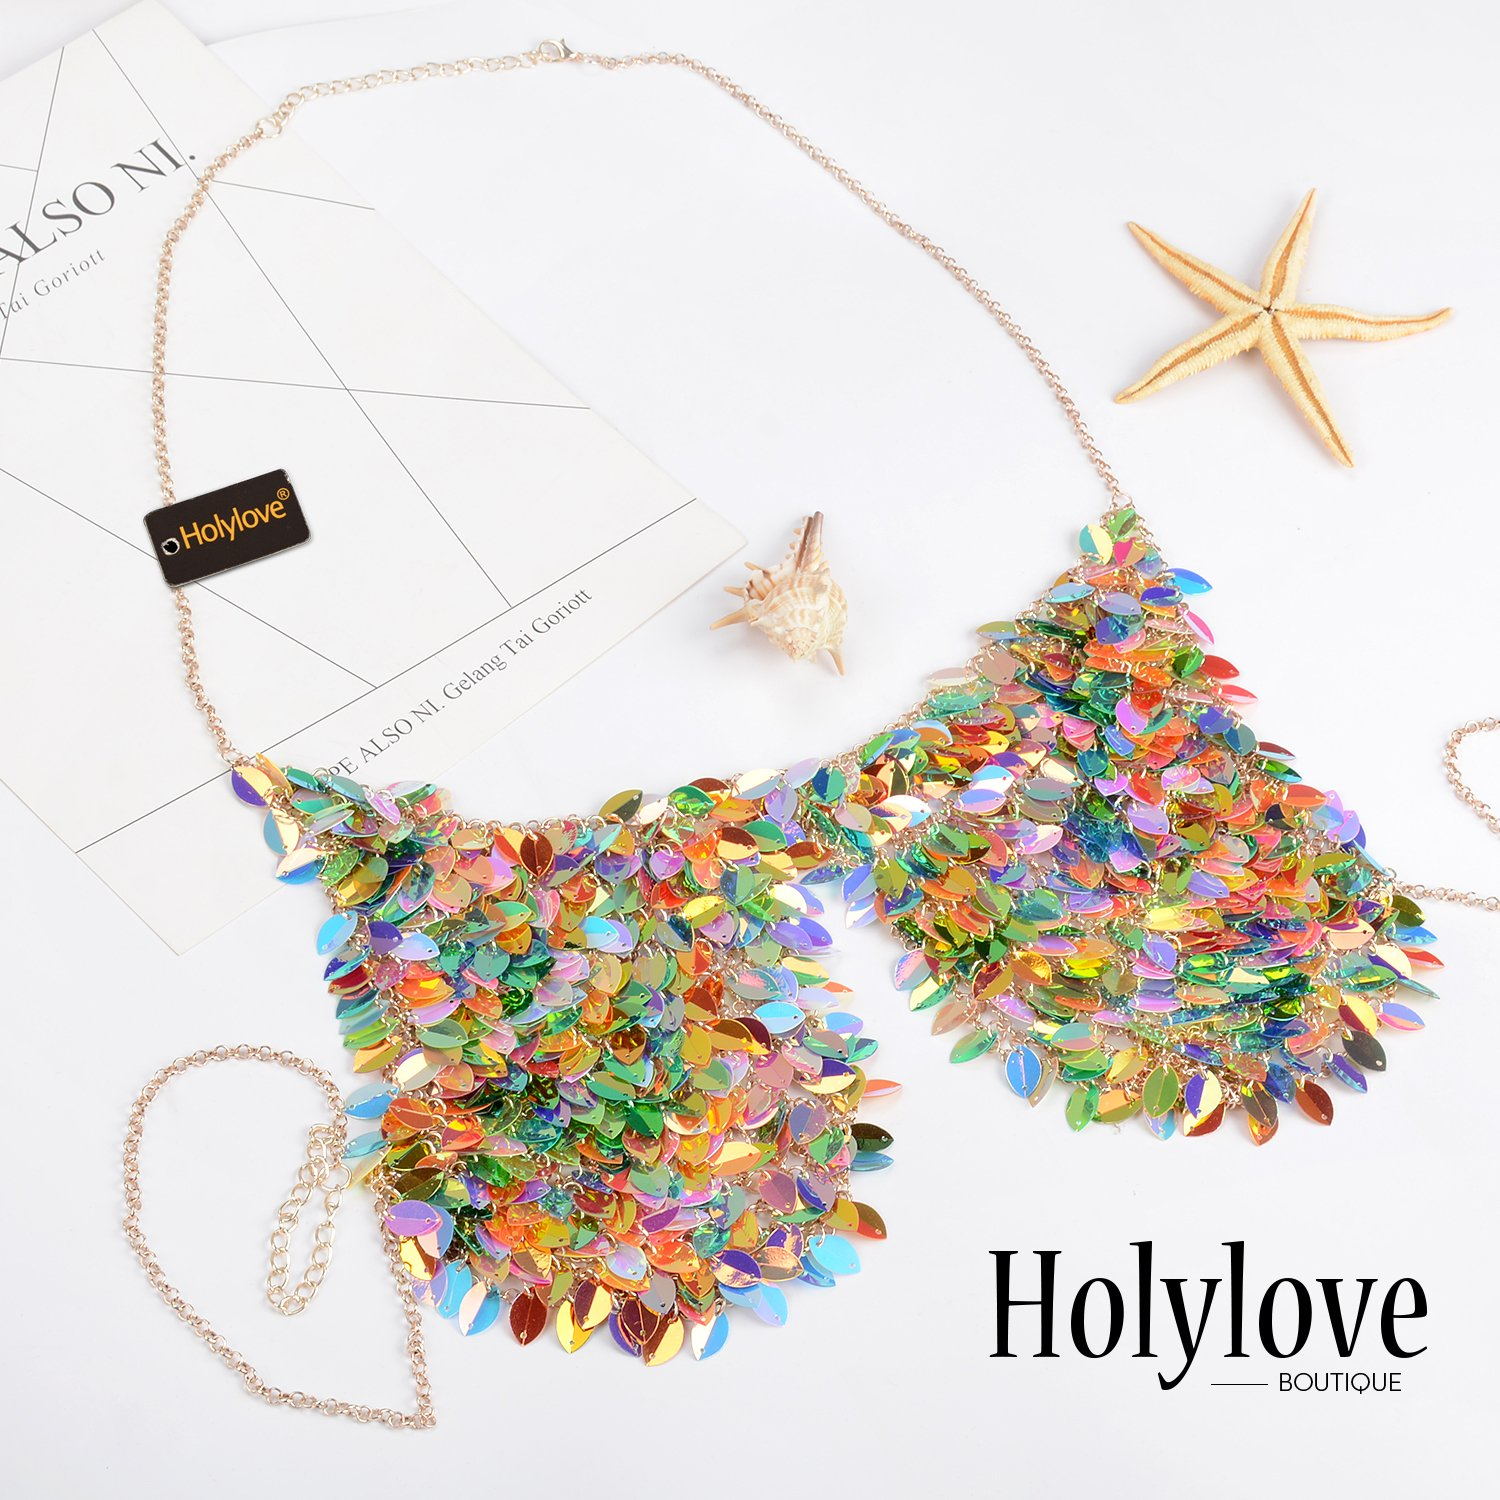 Holylove Paillette Sequin Bra Tops Body Chain Necklace Jewelry Colorful Sexy Charm for Women Lady Summer Beach Hawaiian Style Bikini Beachwear - HLBN5 Colorful by Holylove (Image #2)